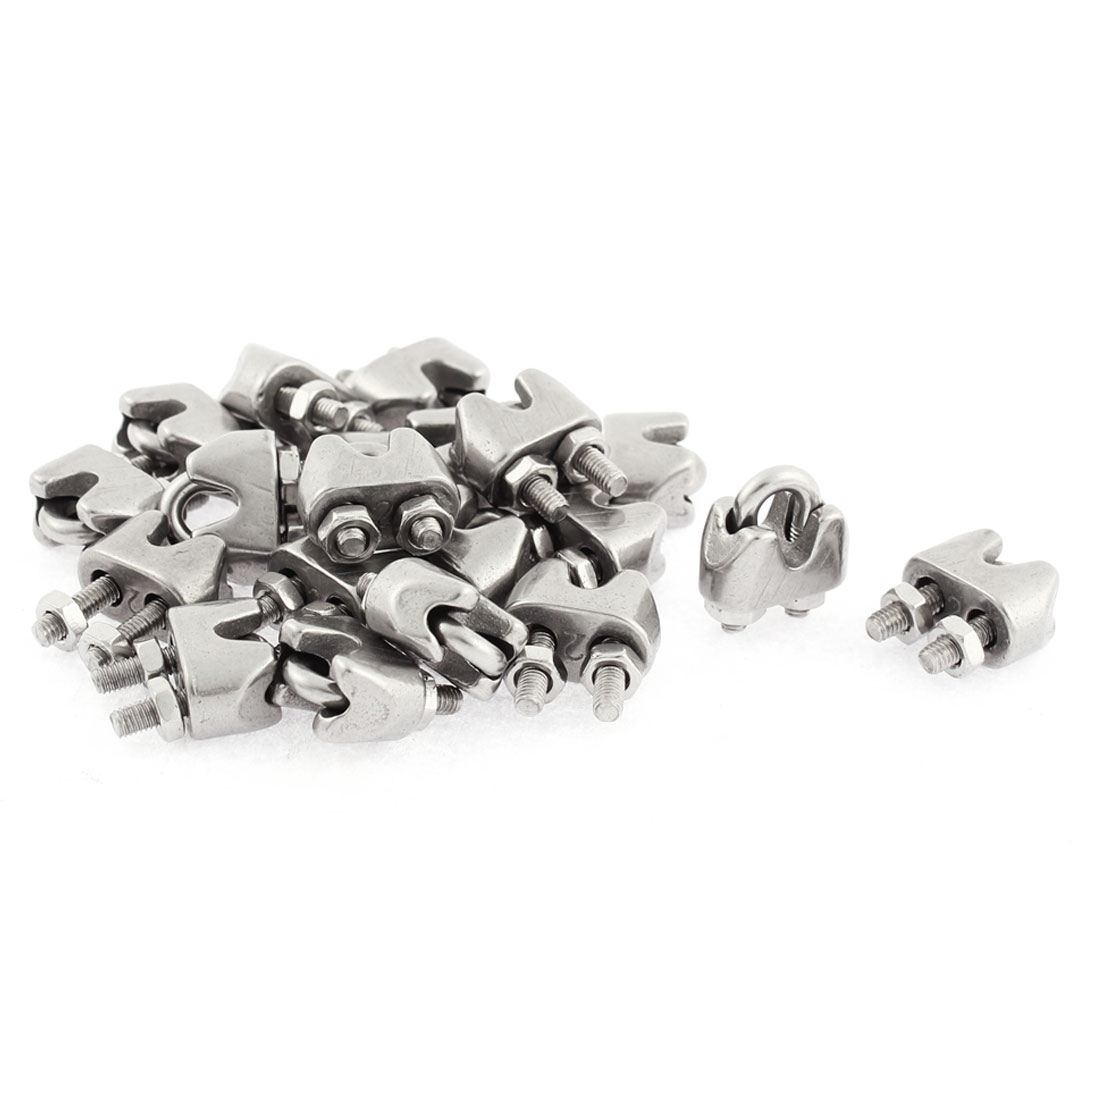 M2 Wire Rope Cable Replacement Clip Clamp Fasteners 20pcs